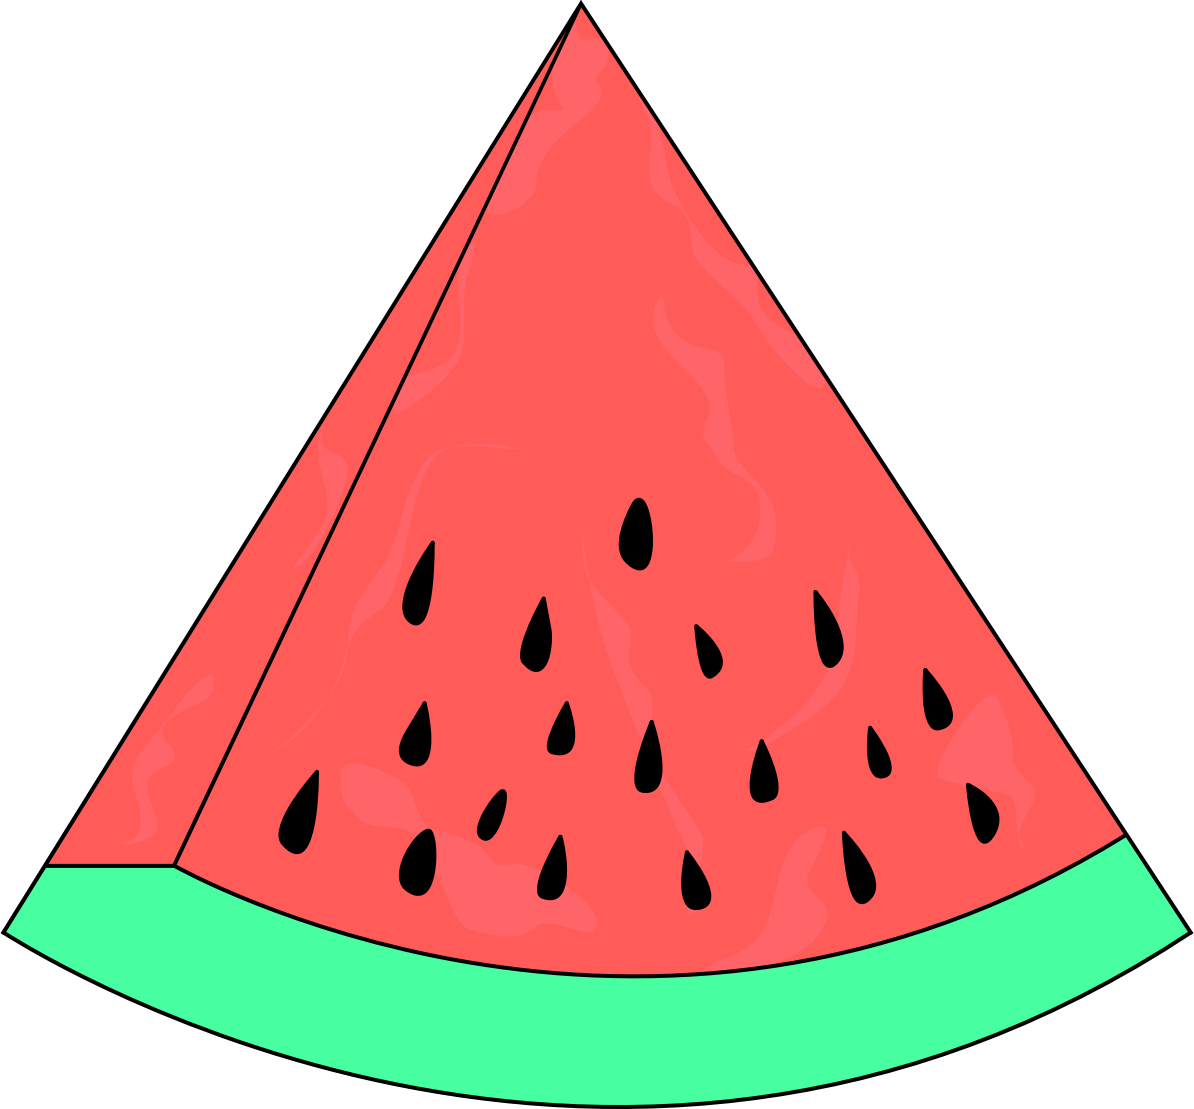 Slice Watermelon Sketch by jilllio